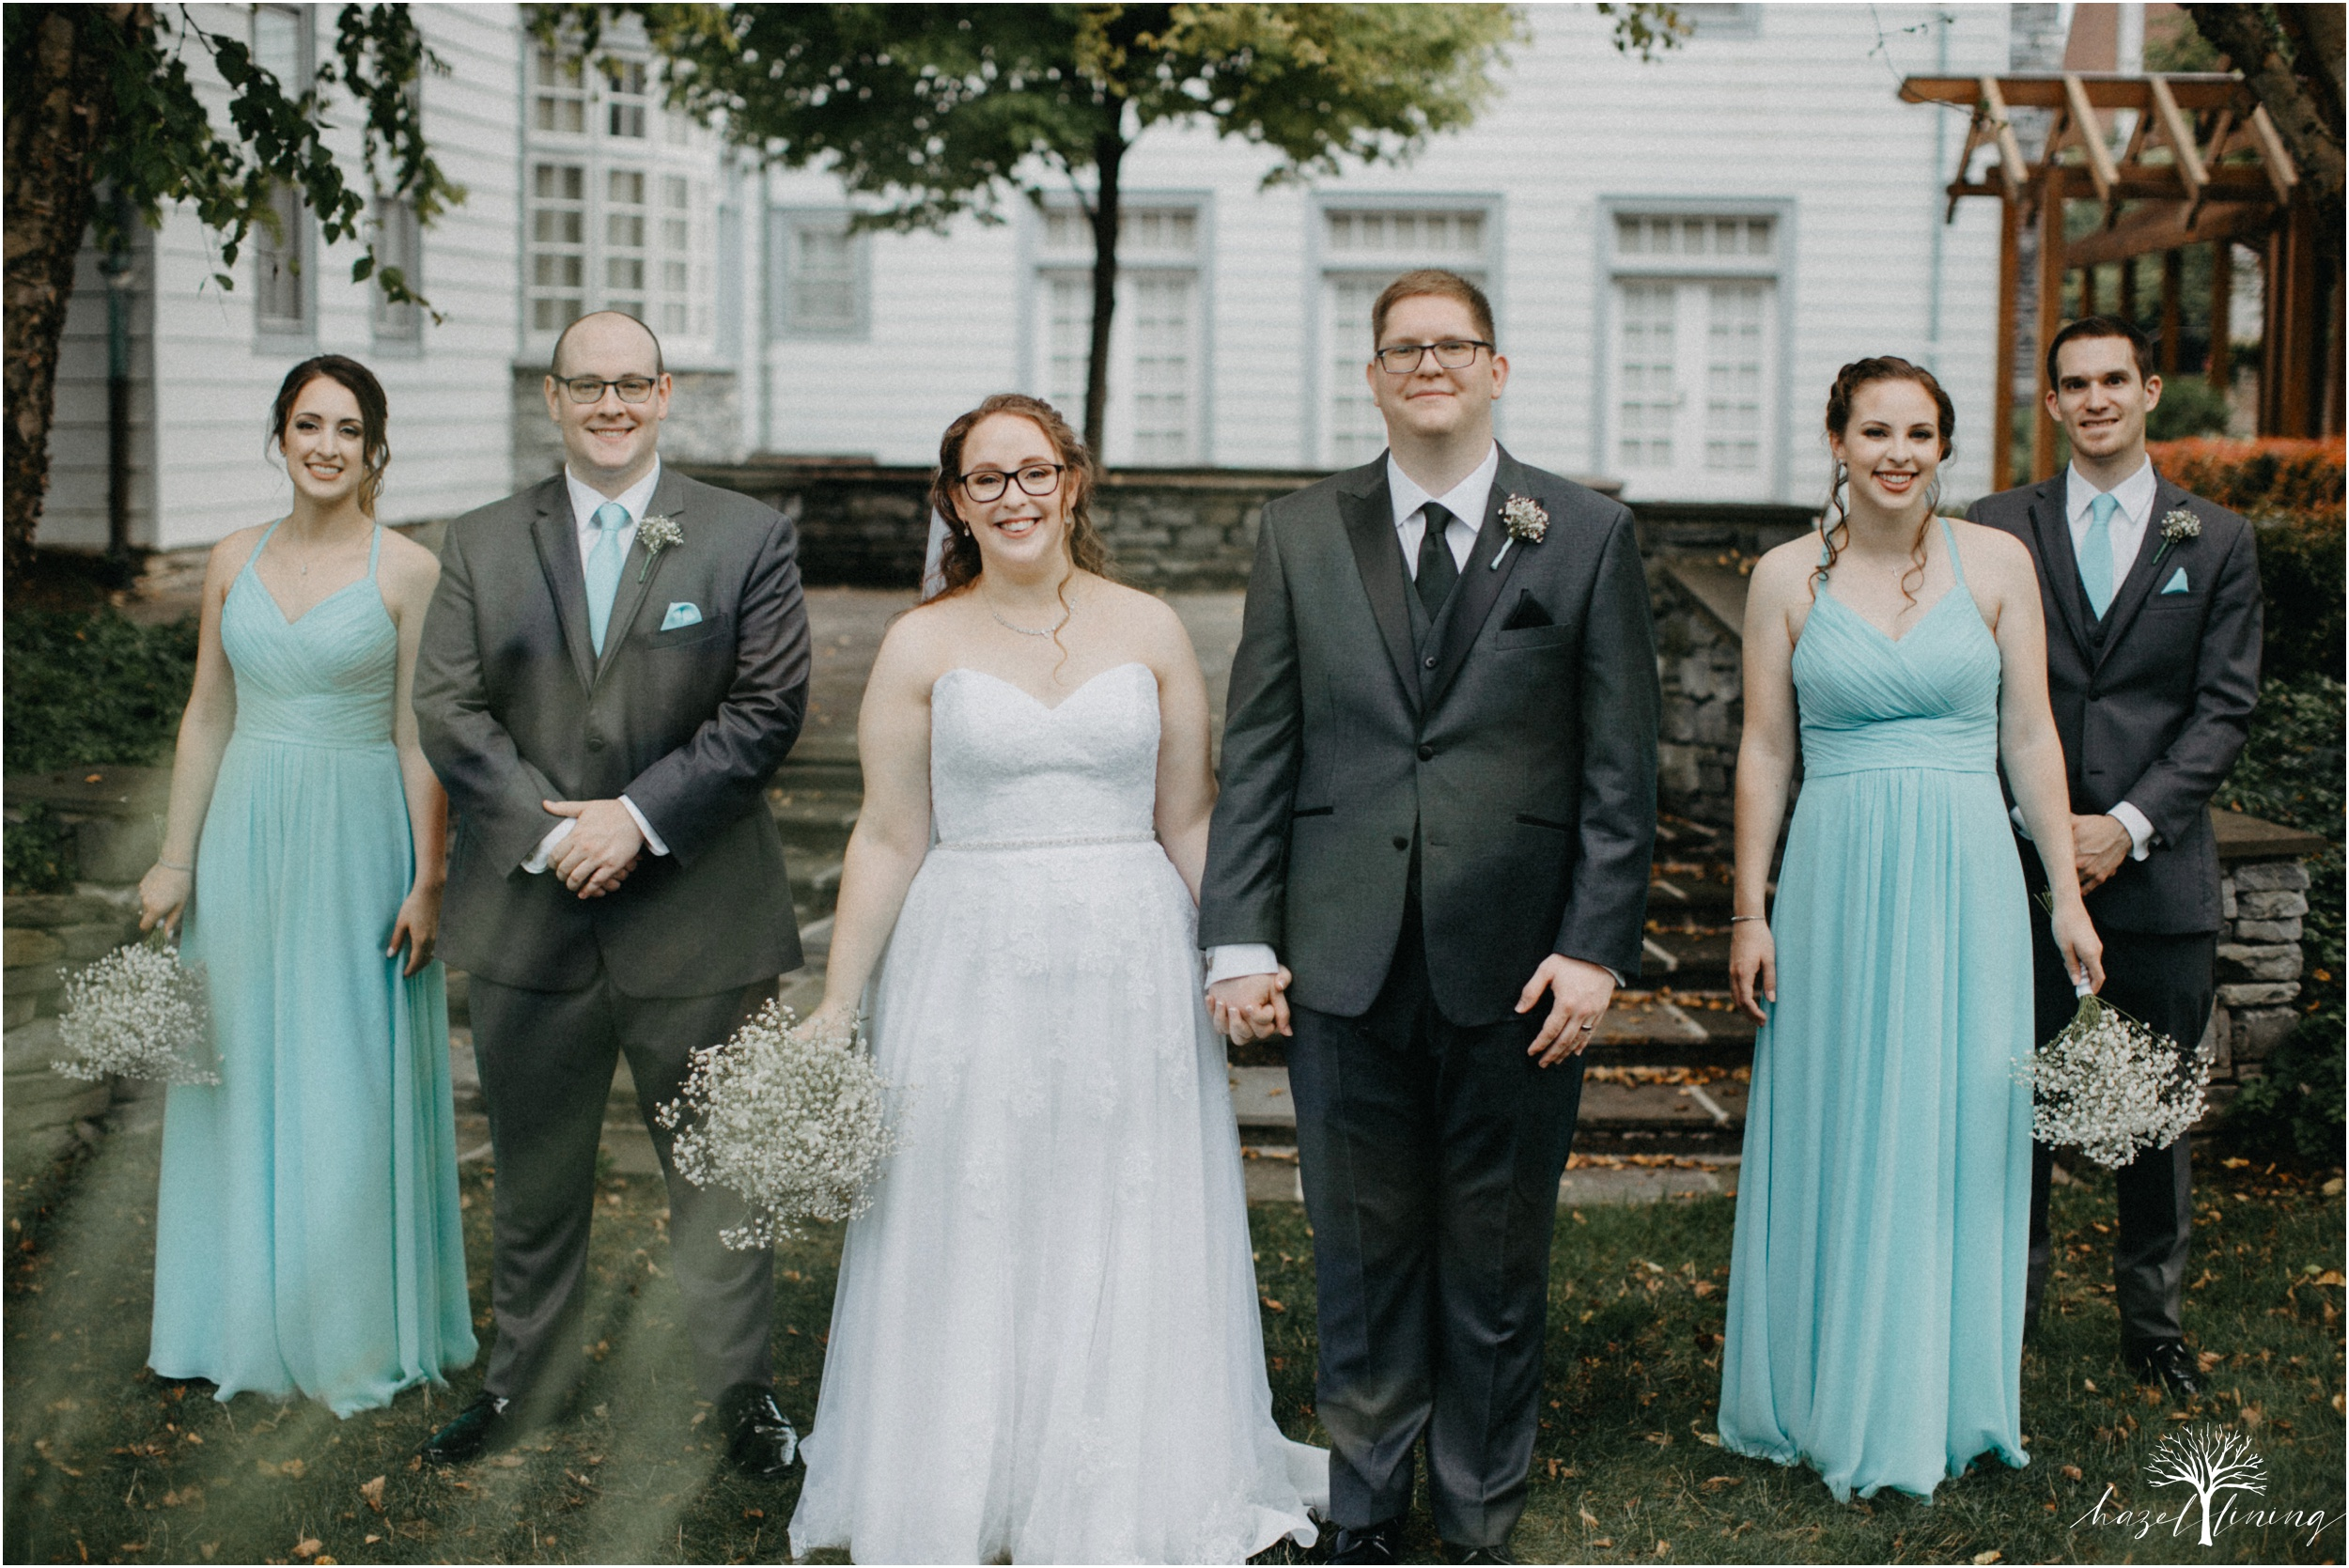 laura-zach-mccaskill-harmony-hall-lebanon-valley-college-summer-wedding-hazel-lining-photography-destination-elopement-wedding-engagement-photography_0085.jpg